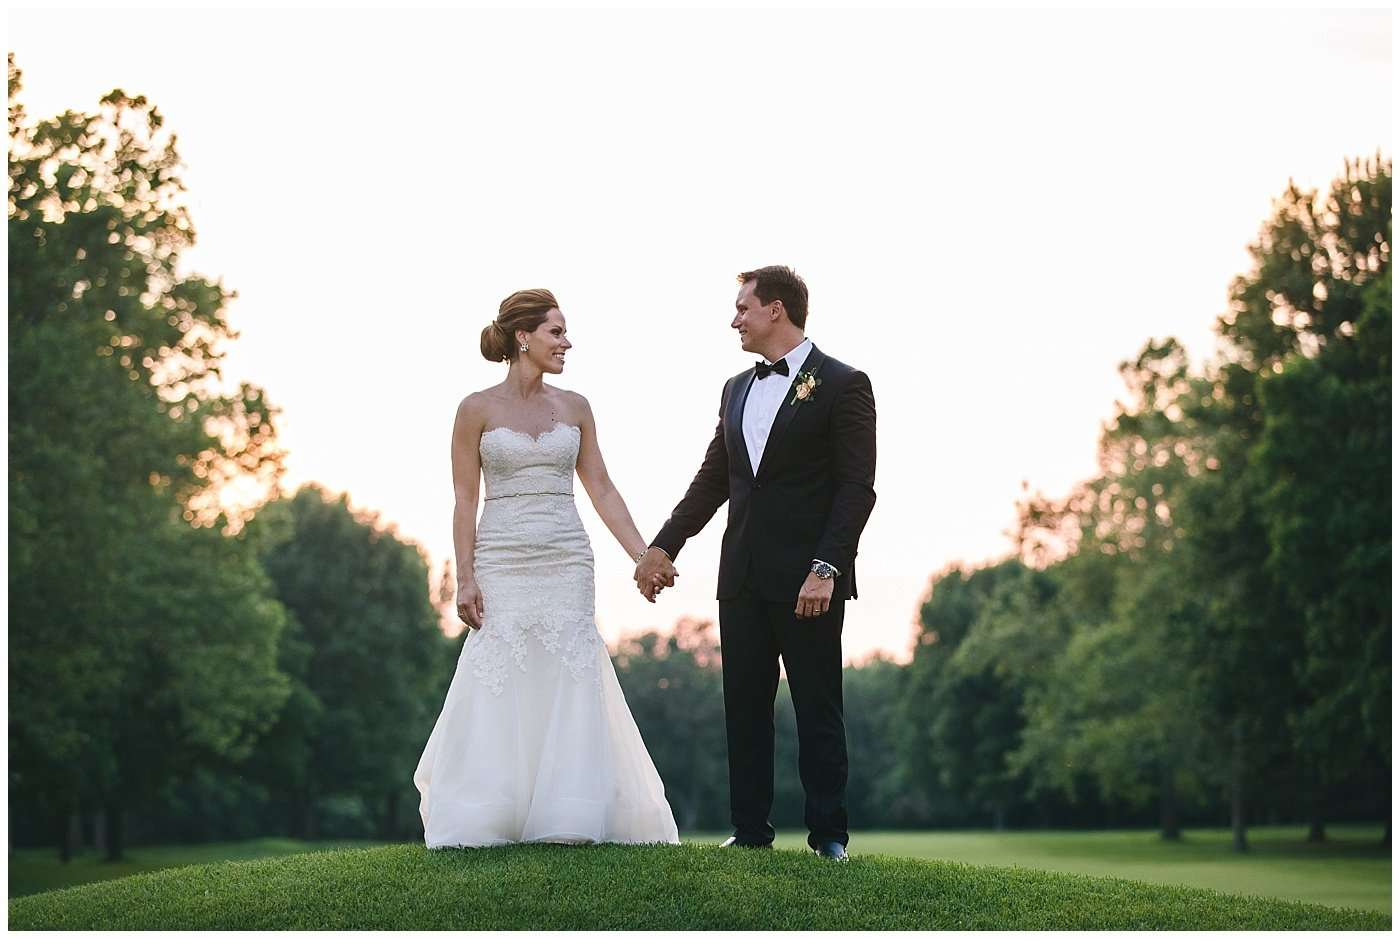 Kim & Lee | A Summer Wedding at Brookside Country Club 170